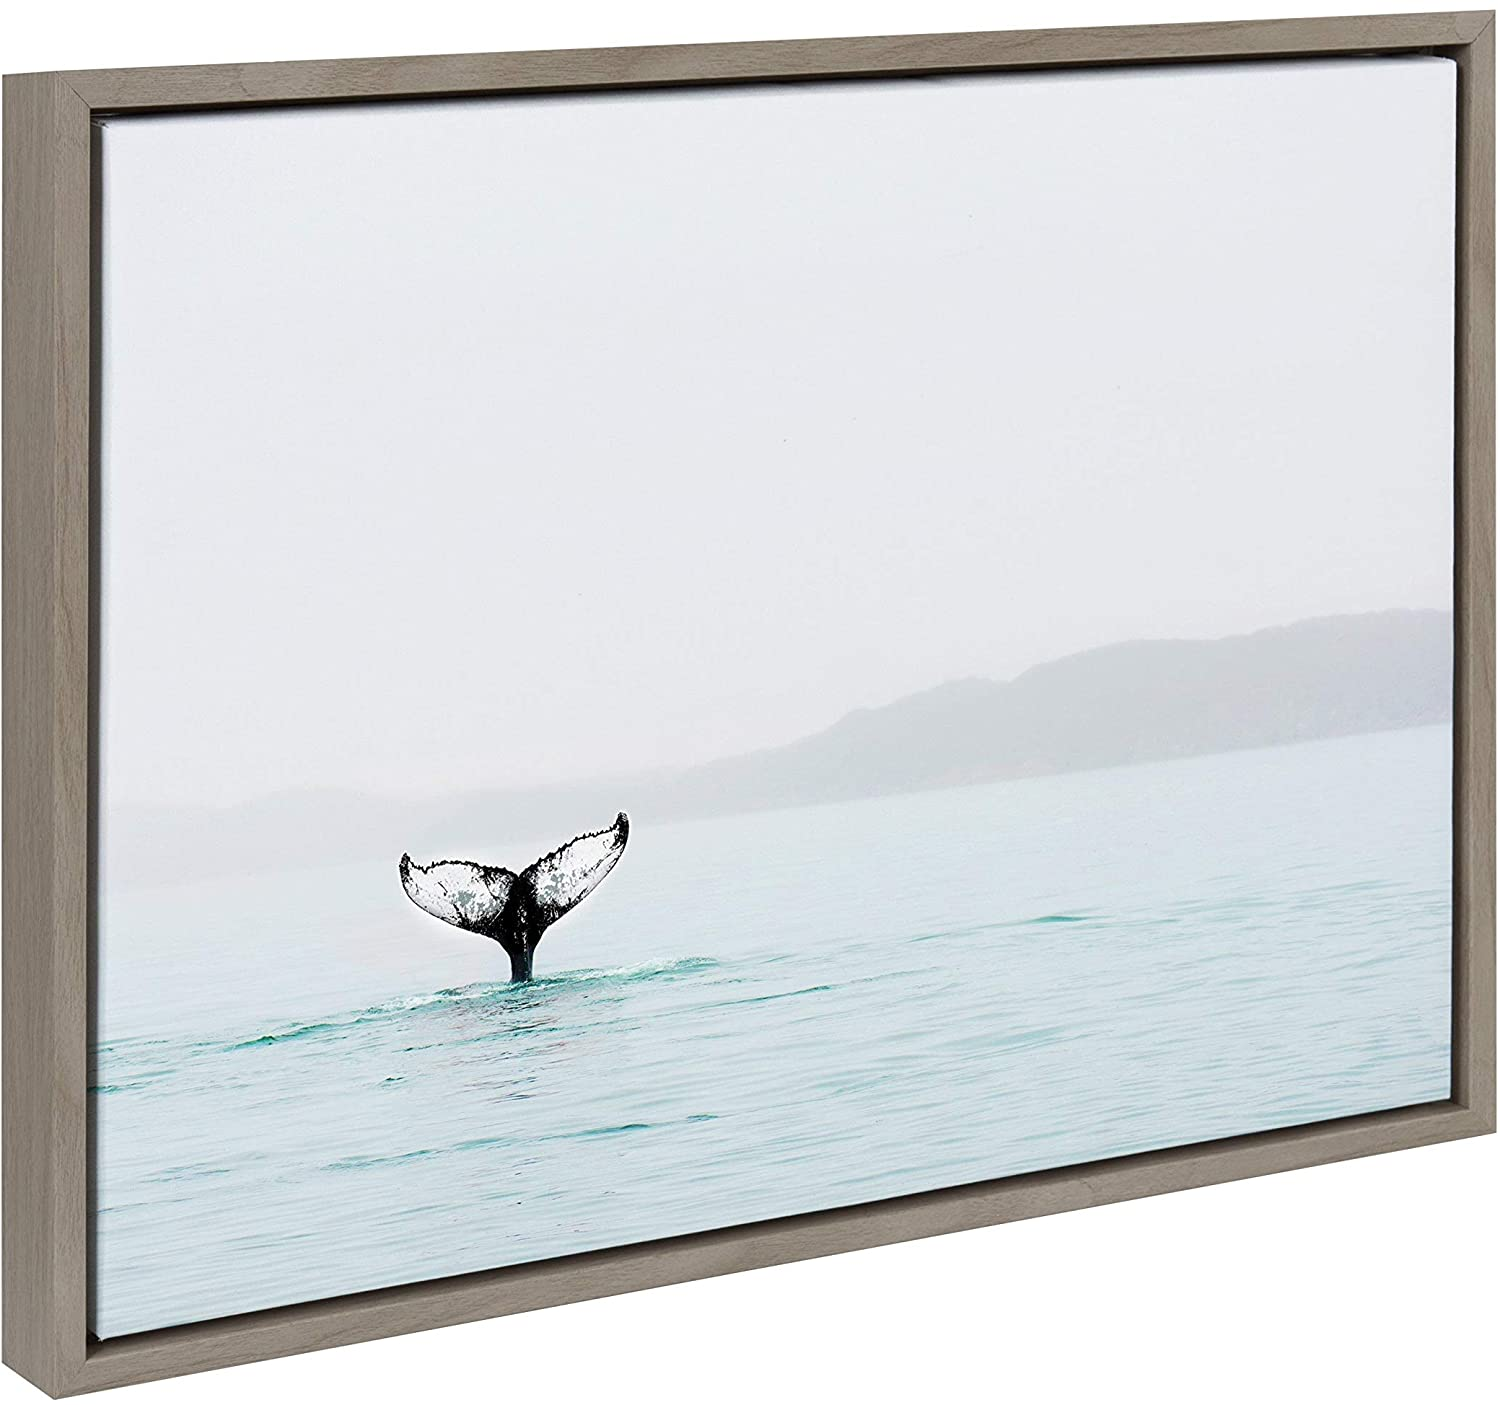 Whale Tail Ocean Framed Canvas Art Gray 18 X 24 Modern Contemporary Rectangle